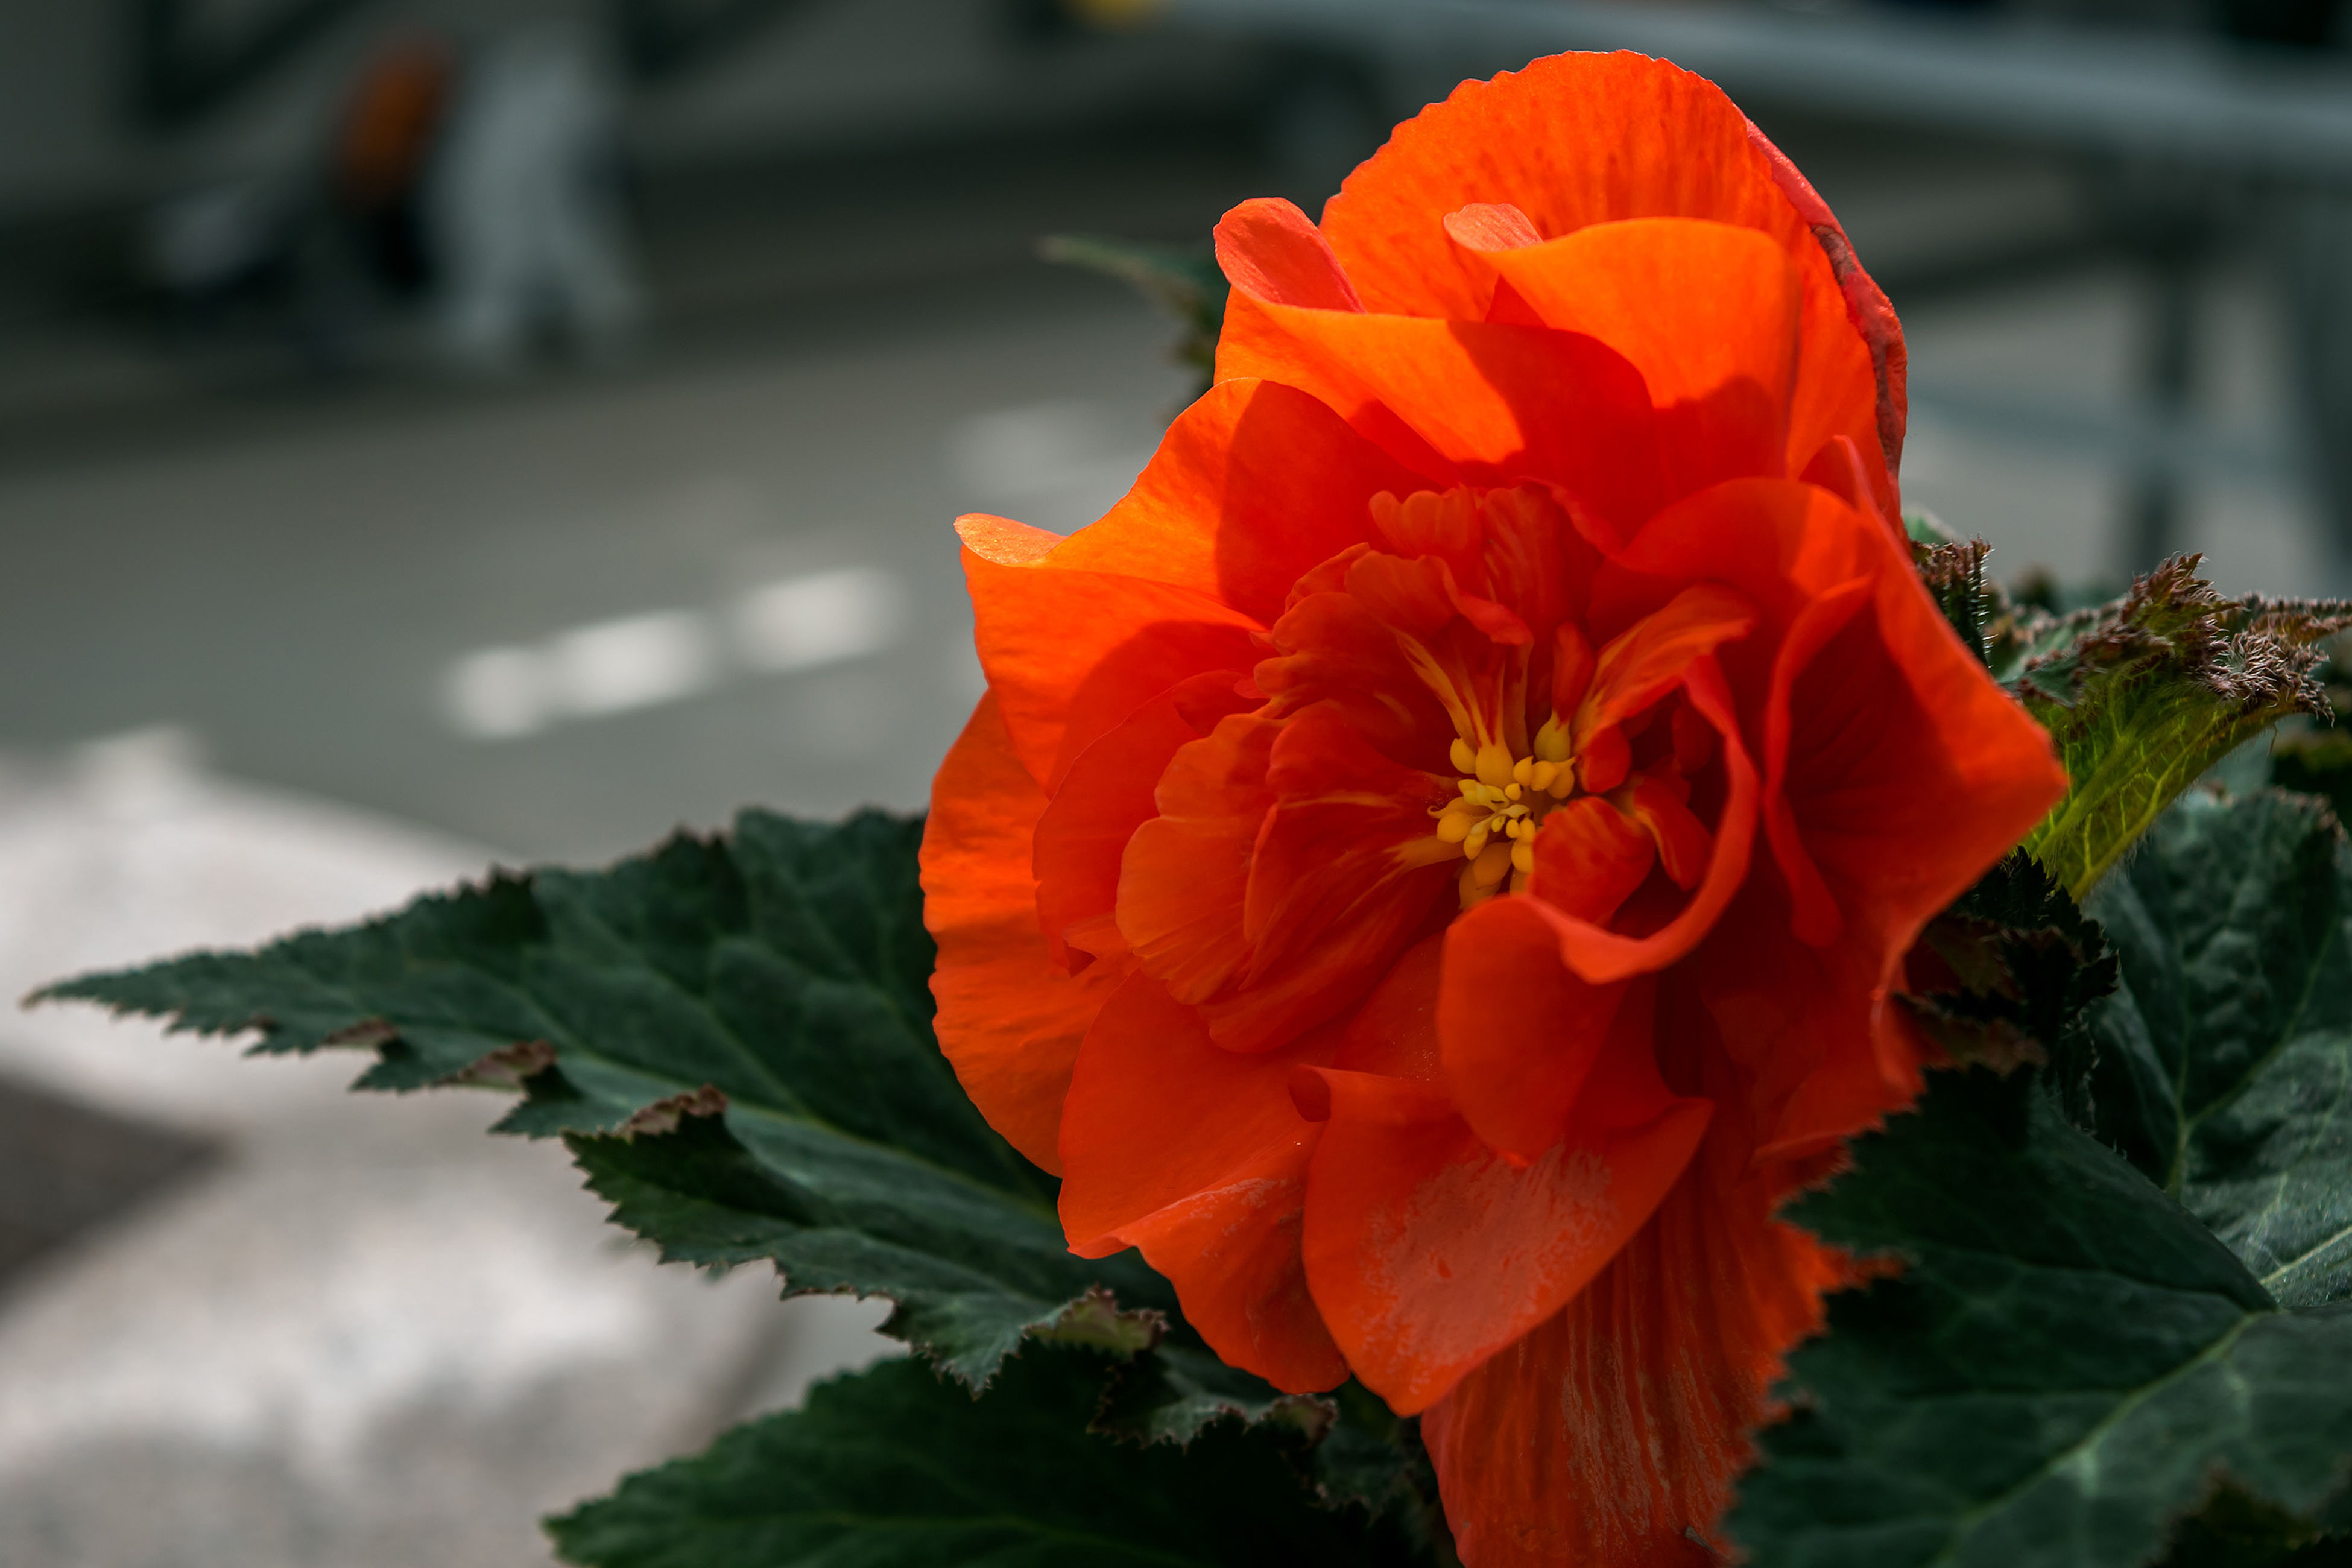 flower, freshness, close-up, petal, leaf, fragility, growth, orange color, flower head, focus on foreground, beauty in nature, nature, springtime, vibrant color, in bloom, single flower, day, outdoors, red, softness, growing, no people, blossom, green color